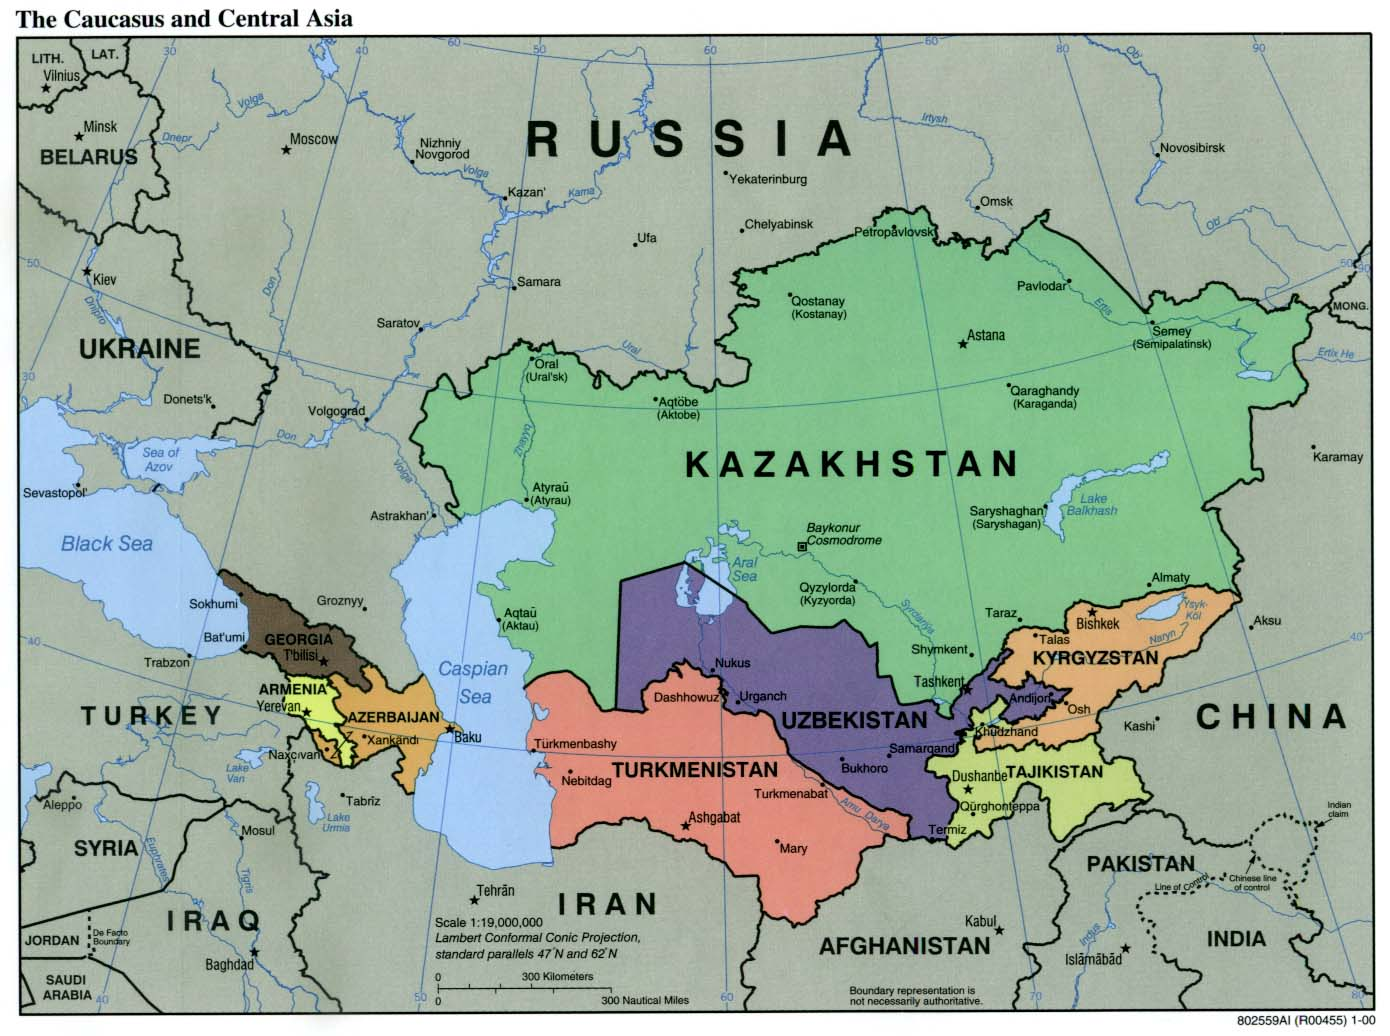 Caucasus Central Asia Political Map 2000 6 large map